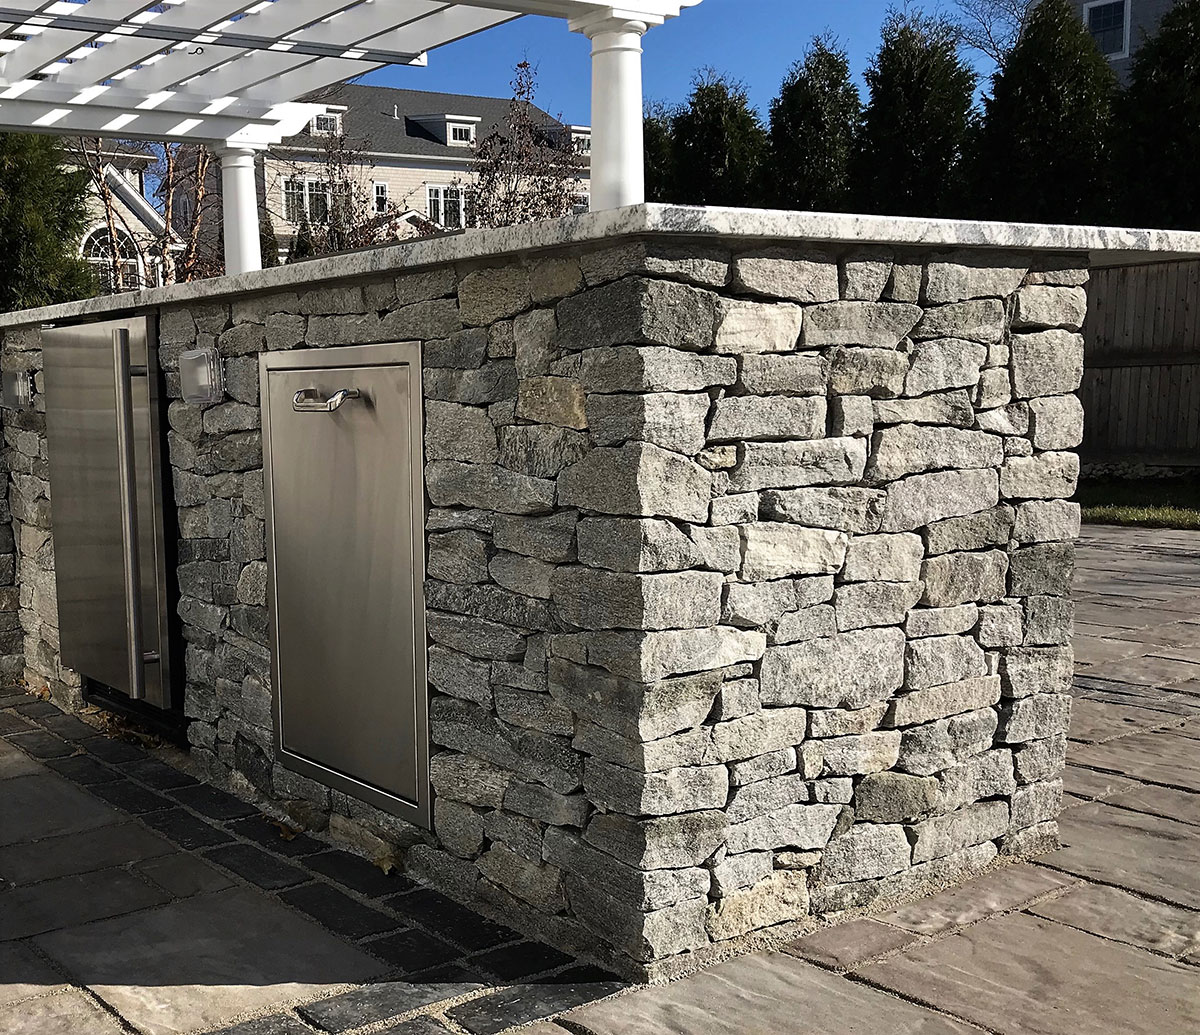 Outdoor stone kitchen area